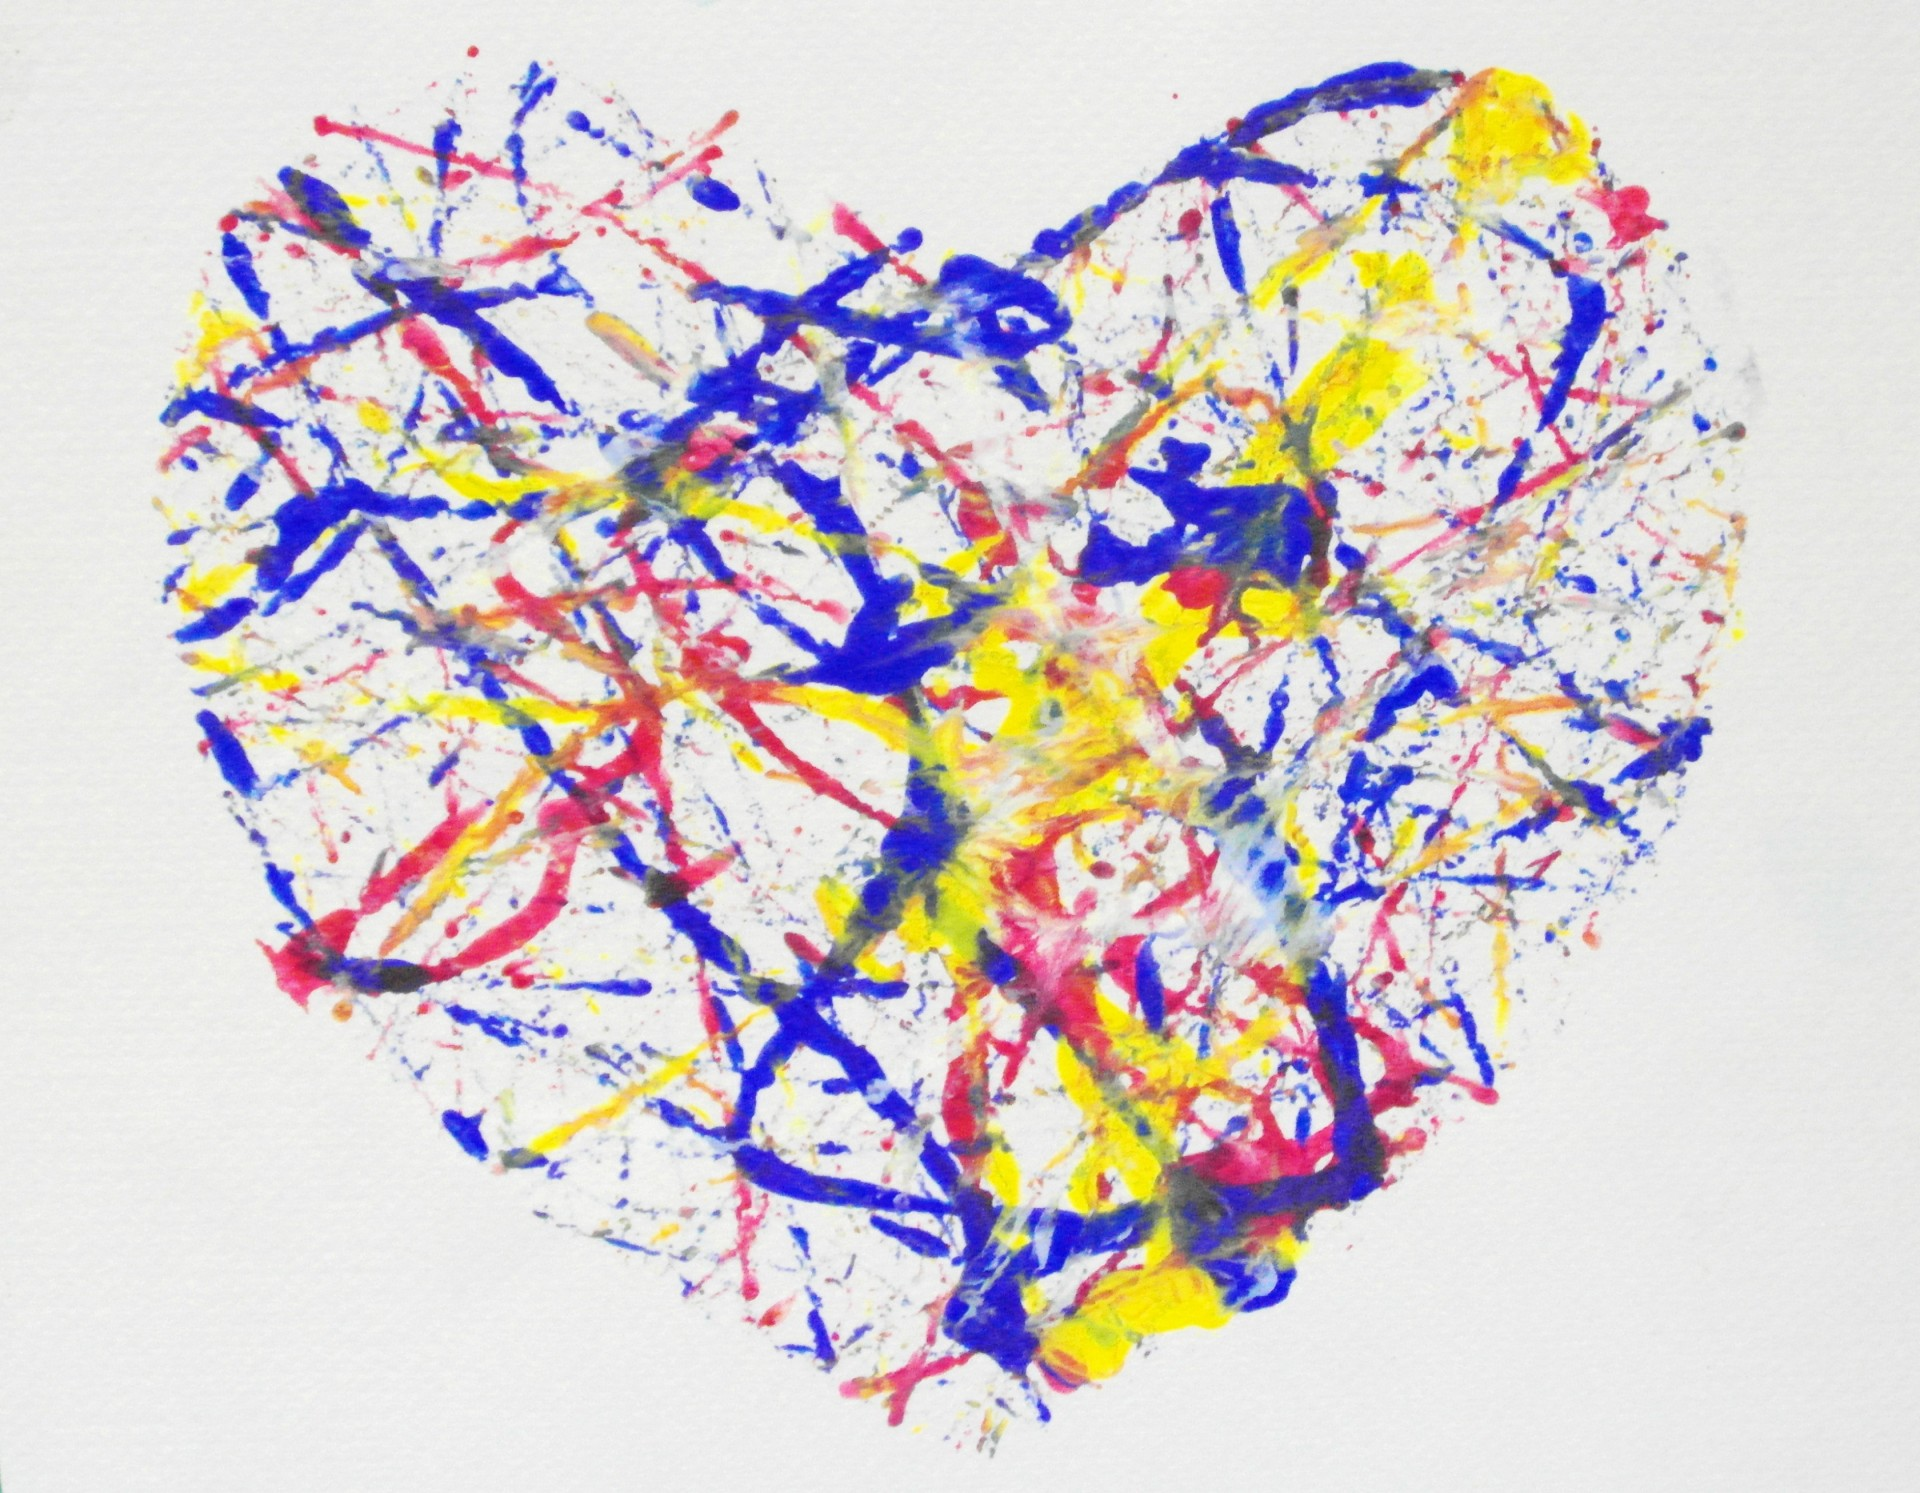 Heart Paint Splatter Free Stock Photo - Public Domain Pictures